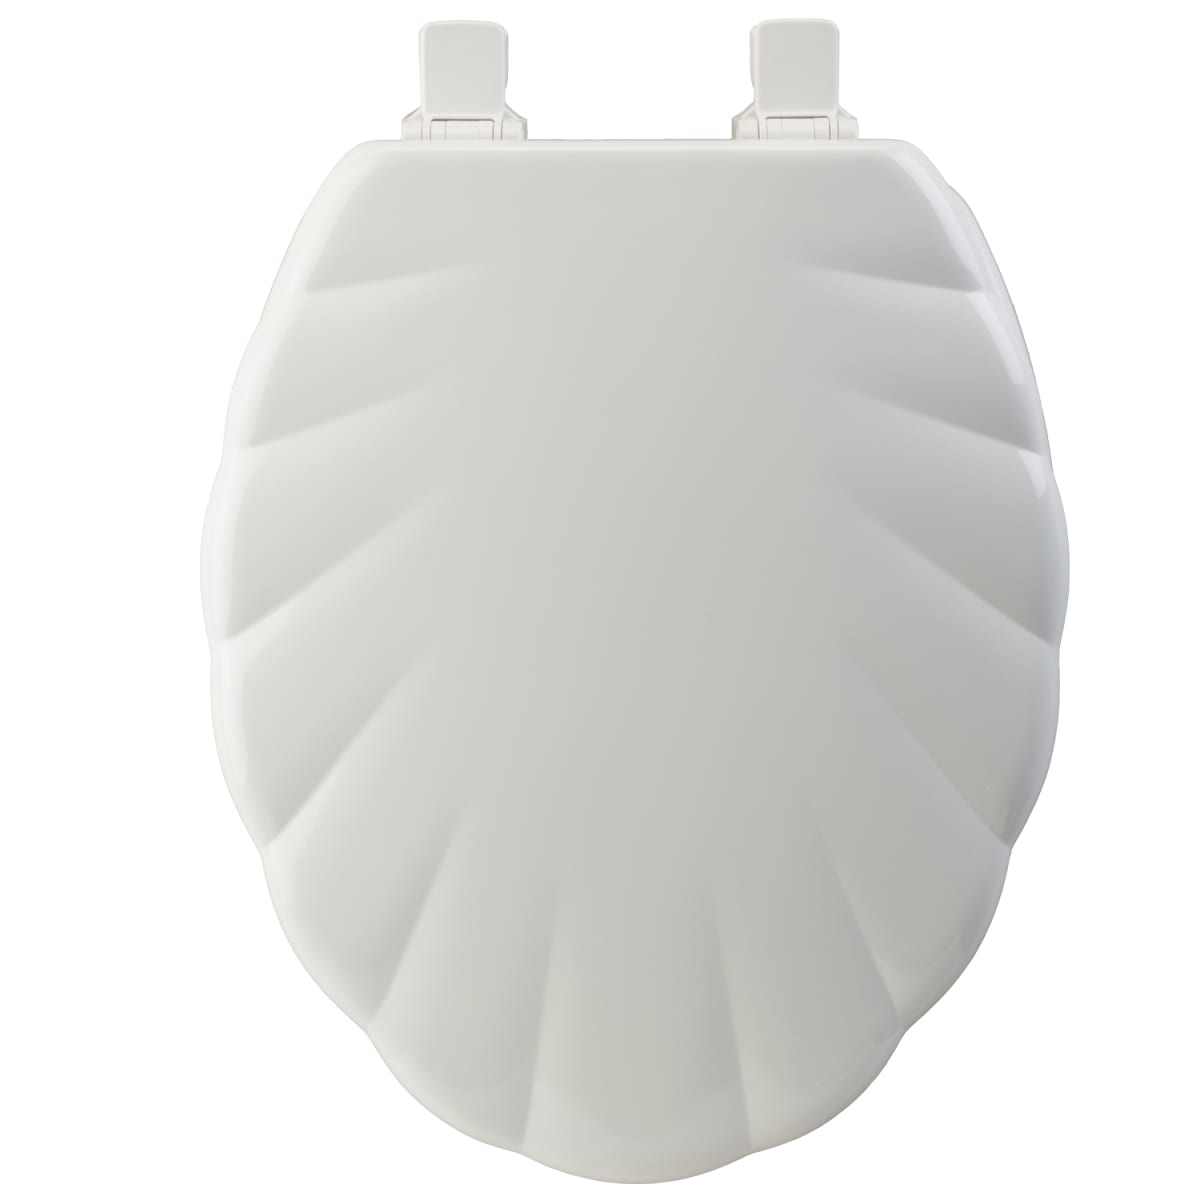 Bemis 122ec 000 White Elongated Molded Wood Shell Design Toilet Seat With Easy Clean Change Hinge Faucet